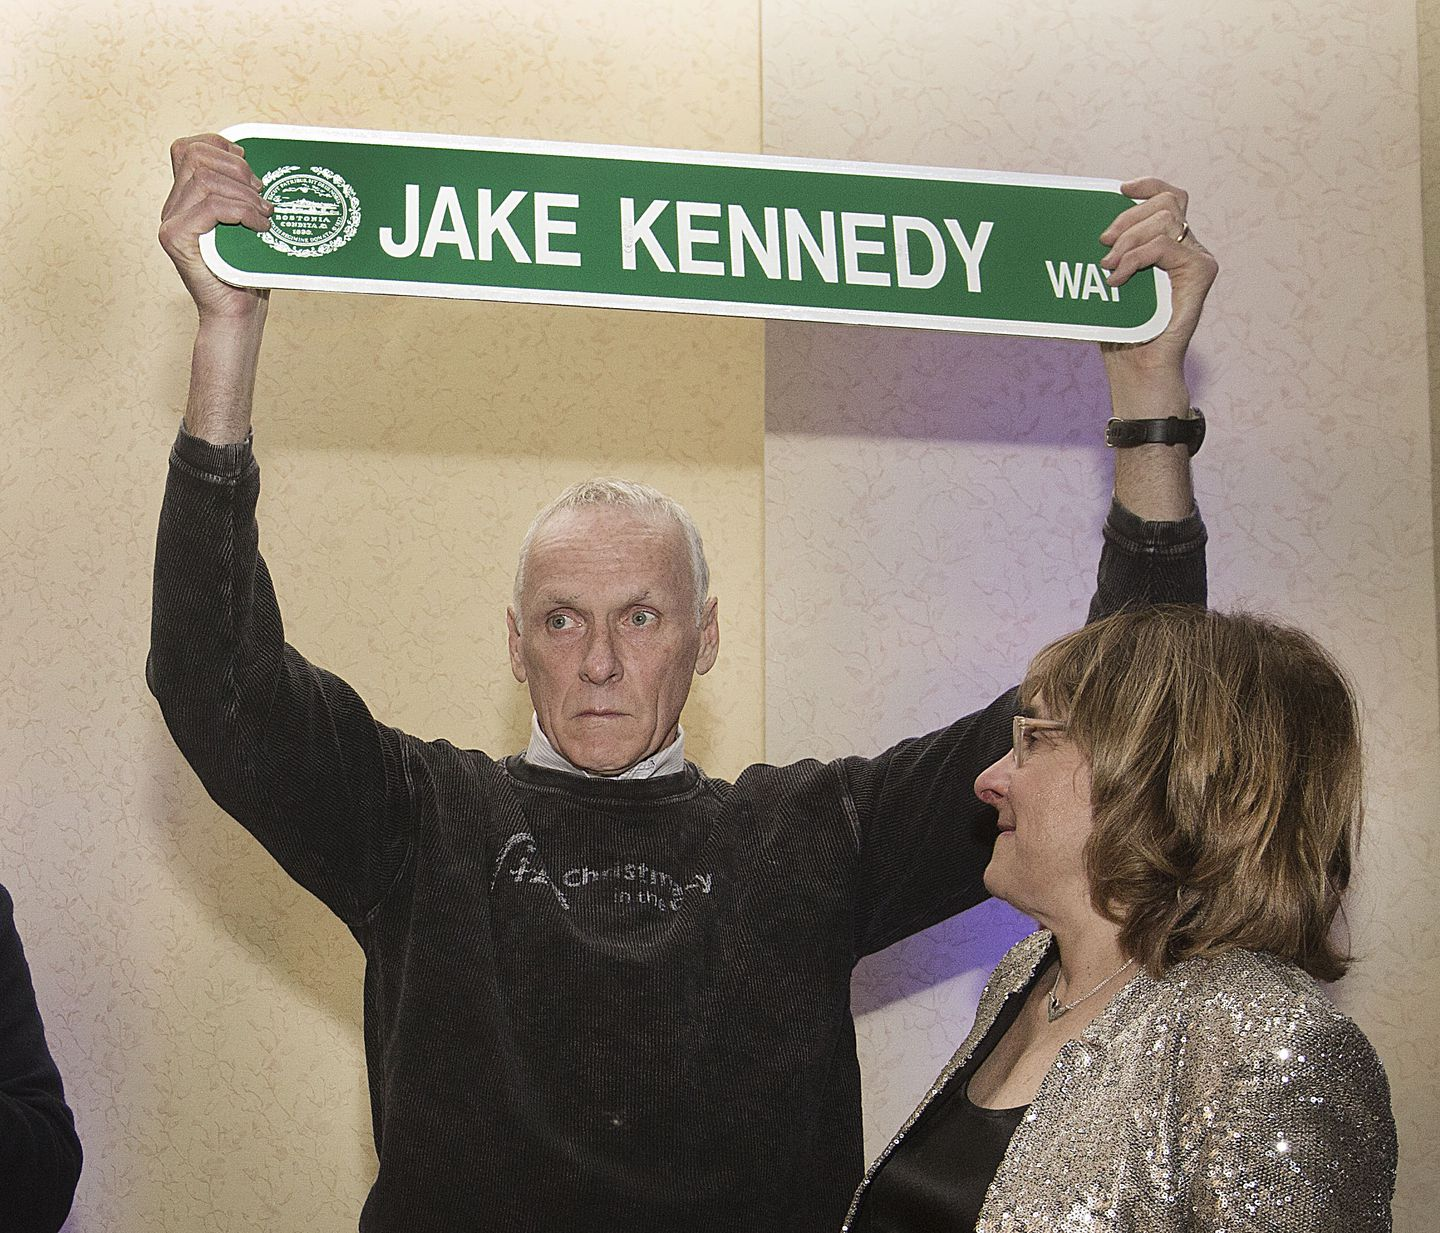 Christmas In The City Boston 2020 Jake Kennedy, Christmas in the City founder, dies at 65 of ALS